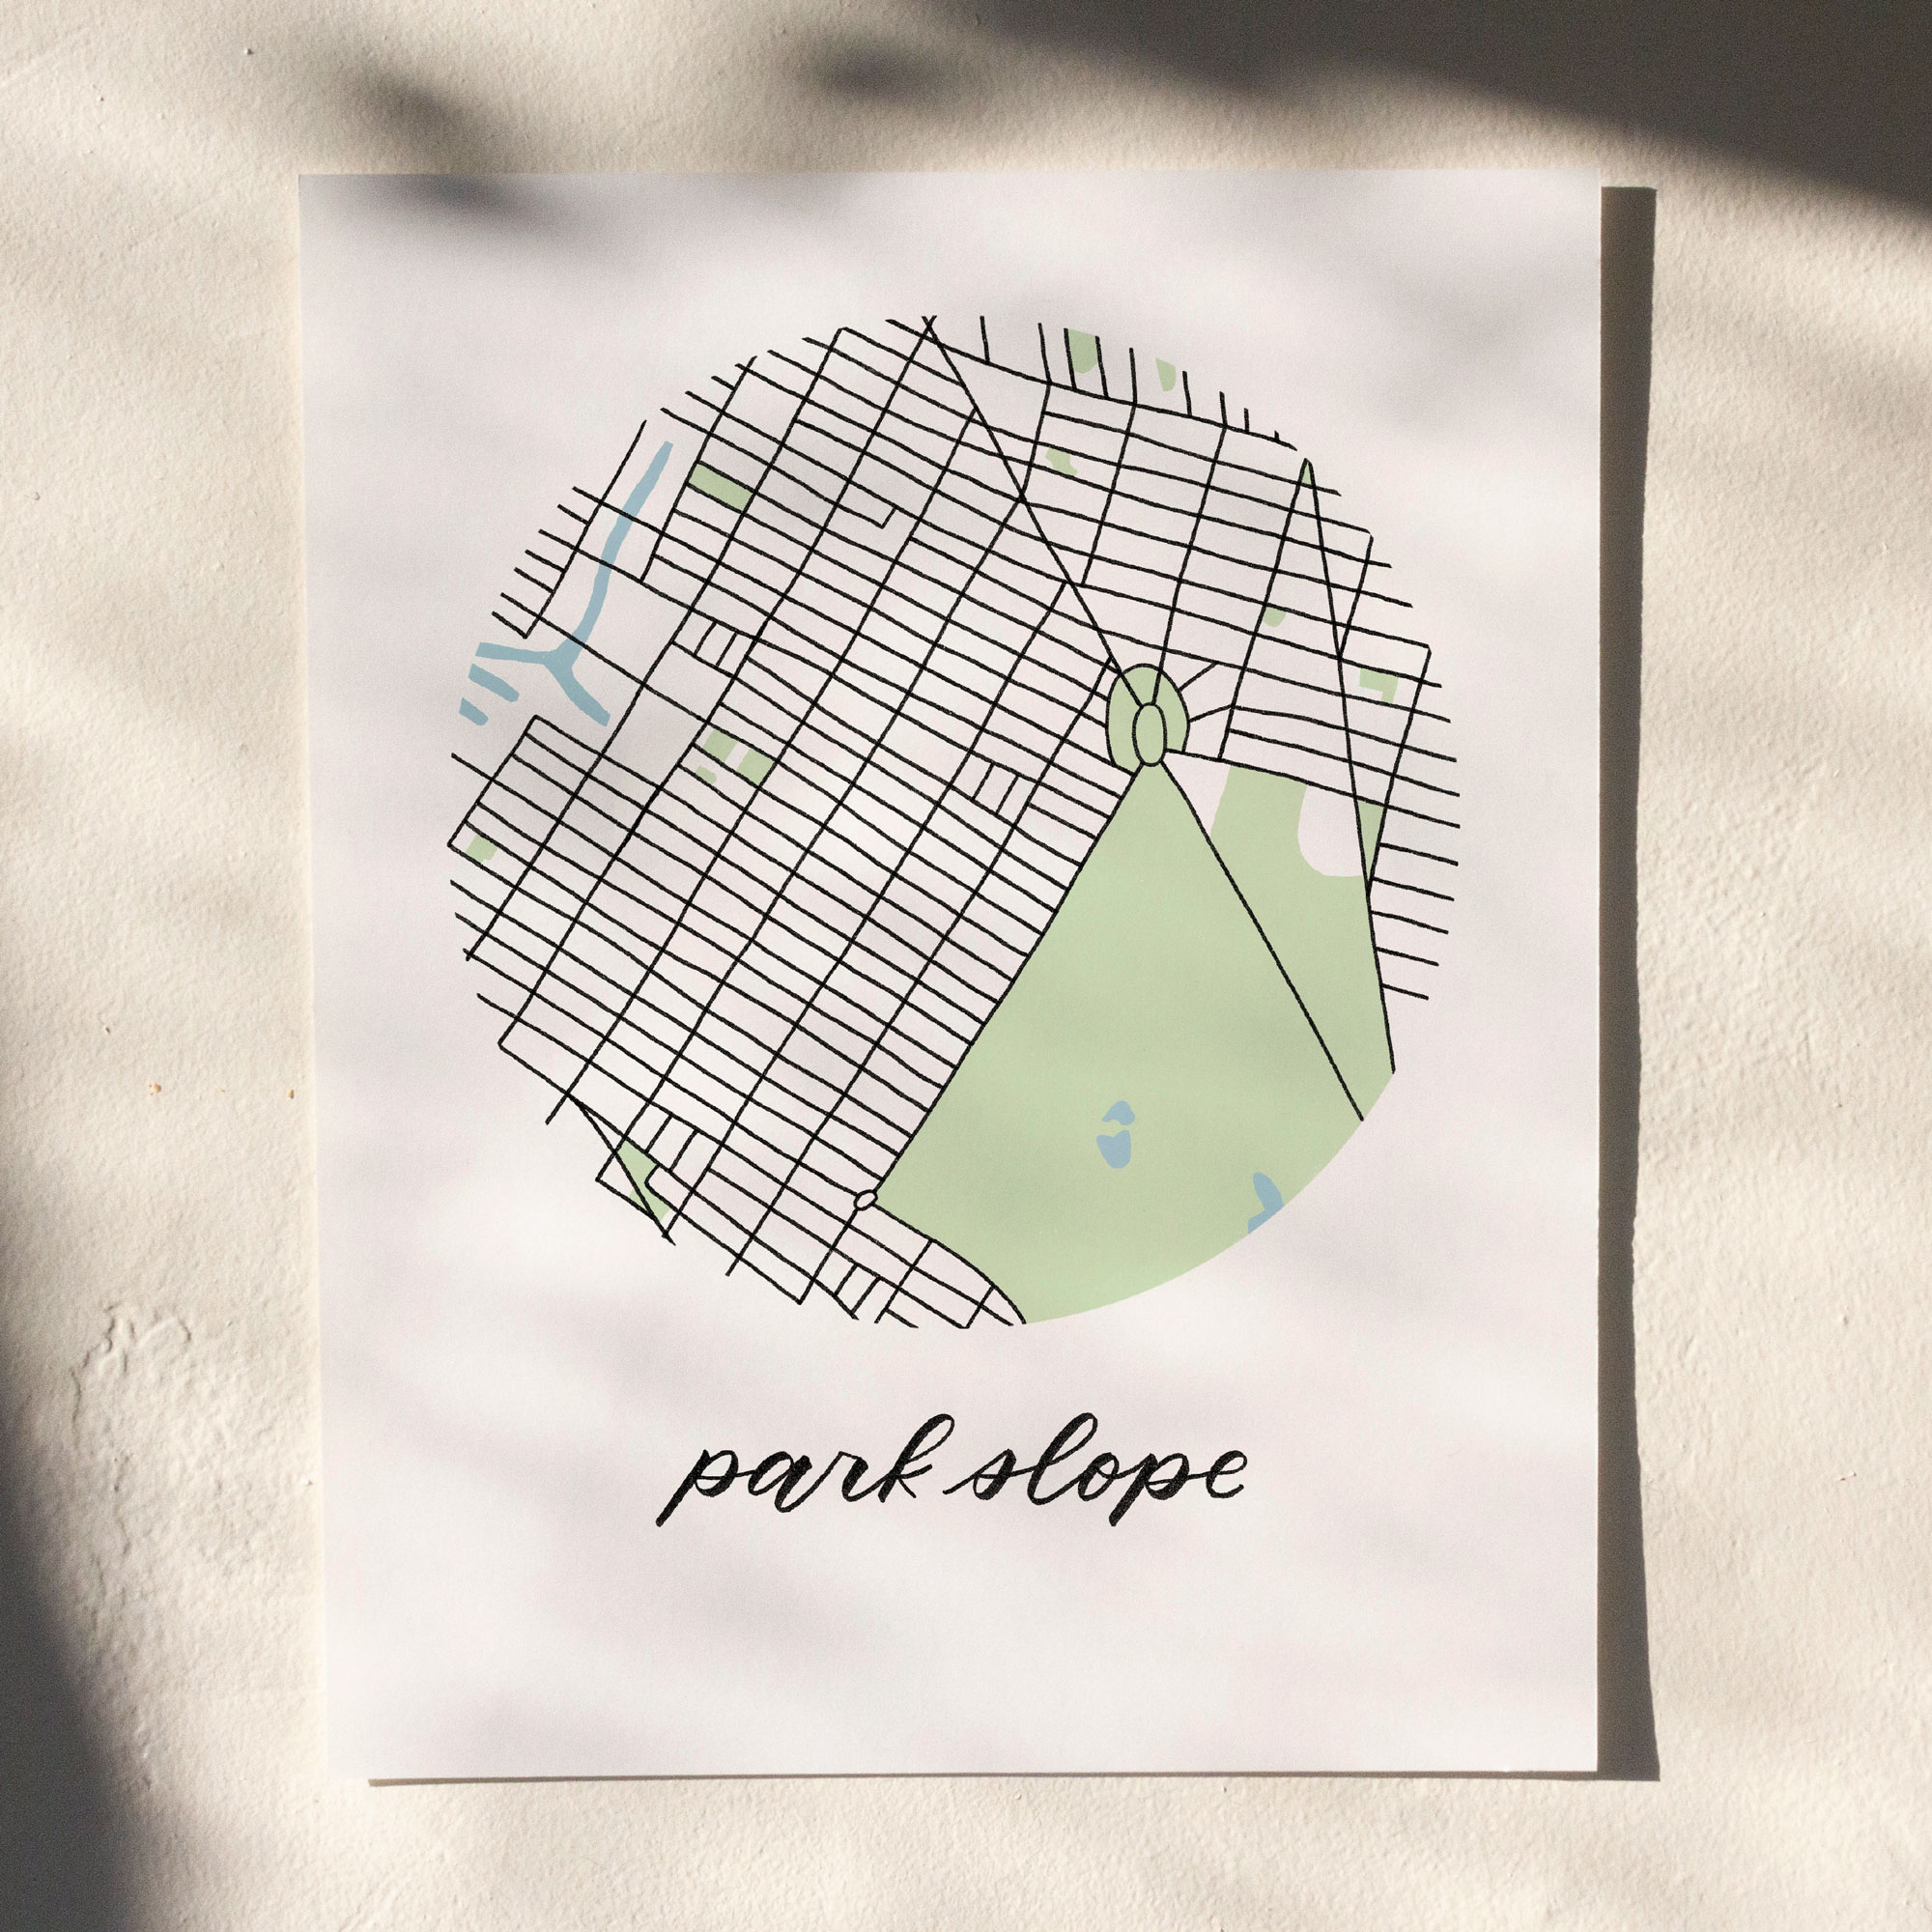 Park Slope, Brooklyn Map Print hanging on white wall with leaf shadows across the image